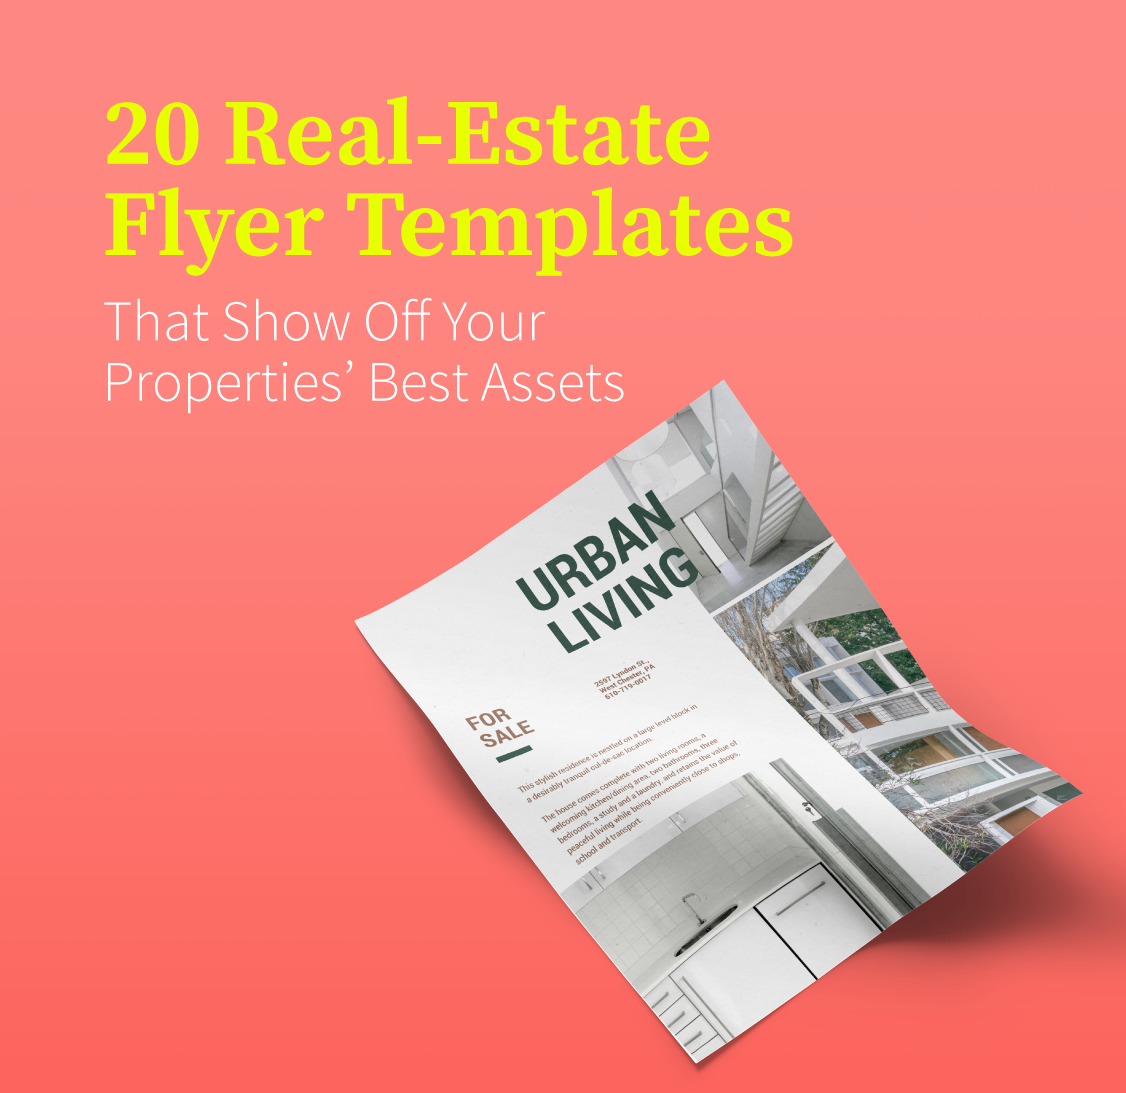 20 eye catching do it yourself real estate flyer templates from the 20 eye catching do it yourself real estate flyer templates from the canva library solutioingenieria Choice Image